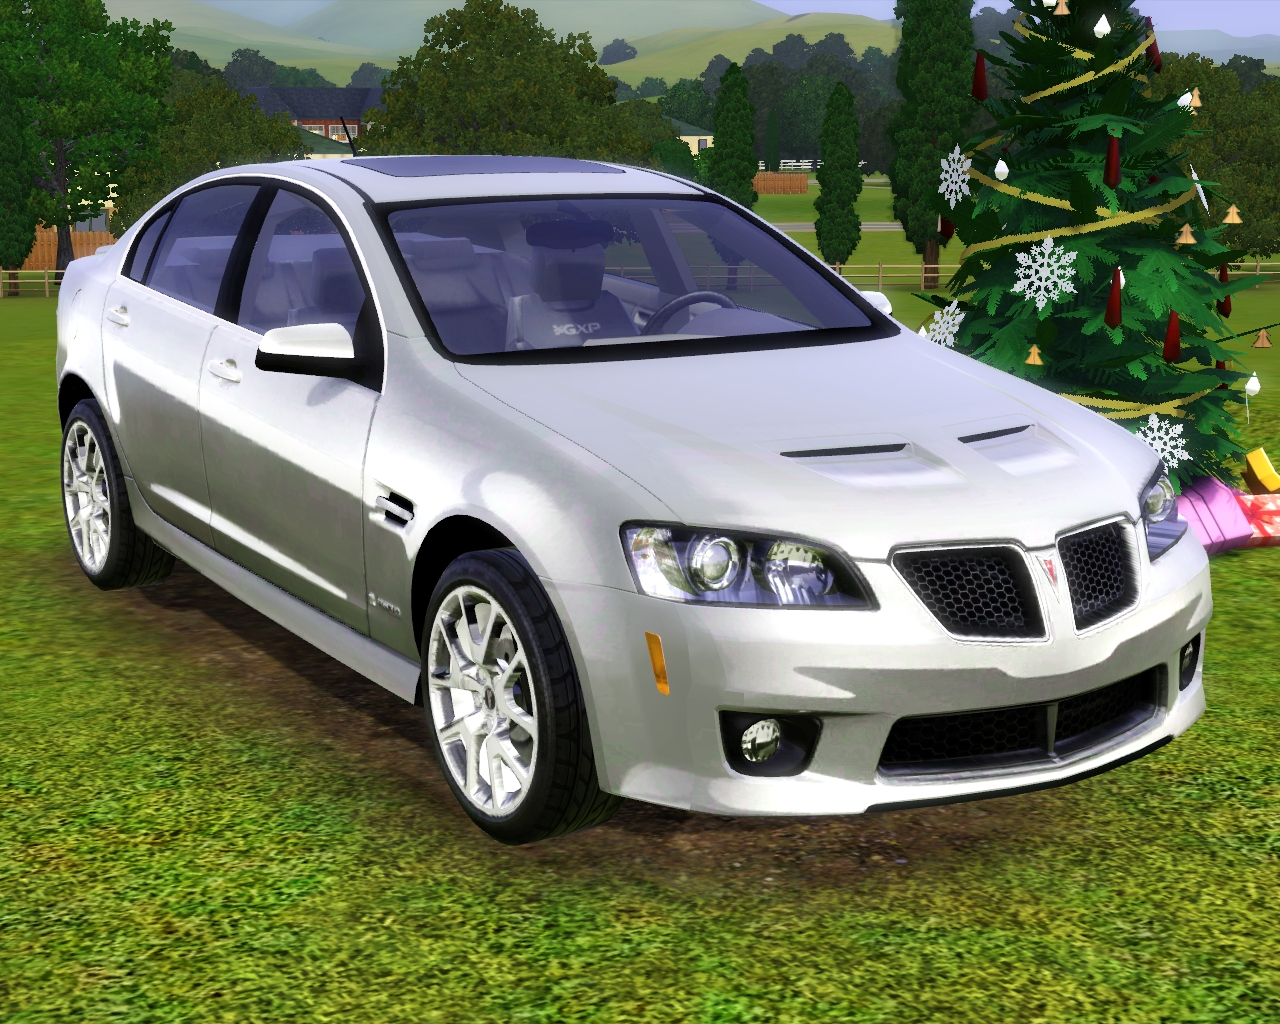 2009 Pontiac G8 GXP by Fresh-Prince